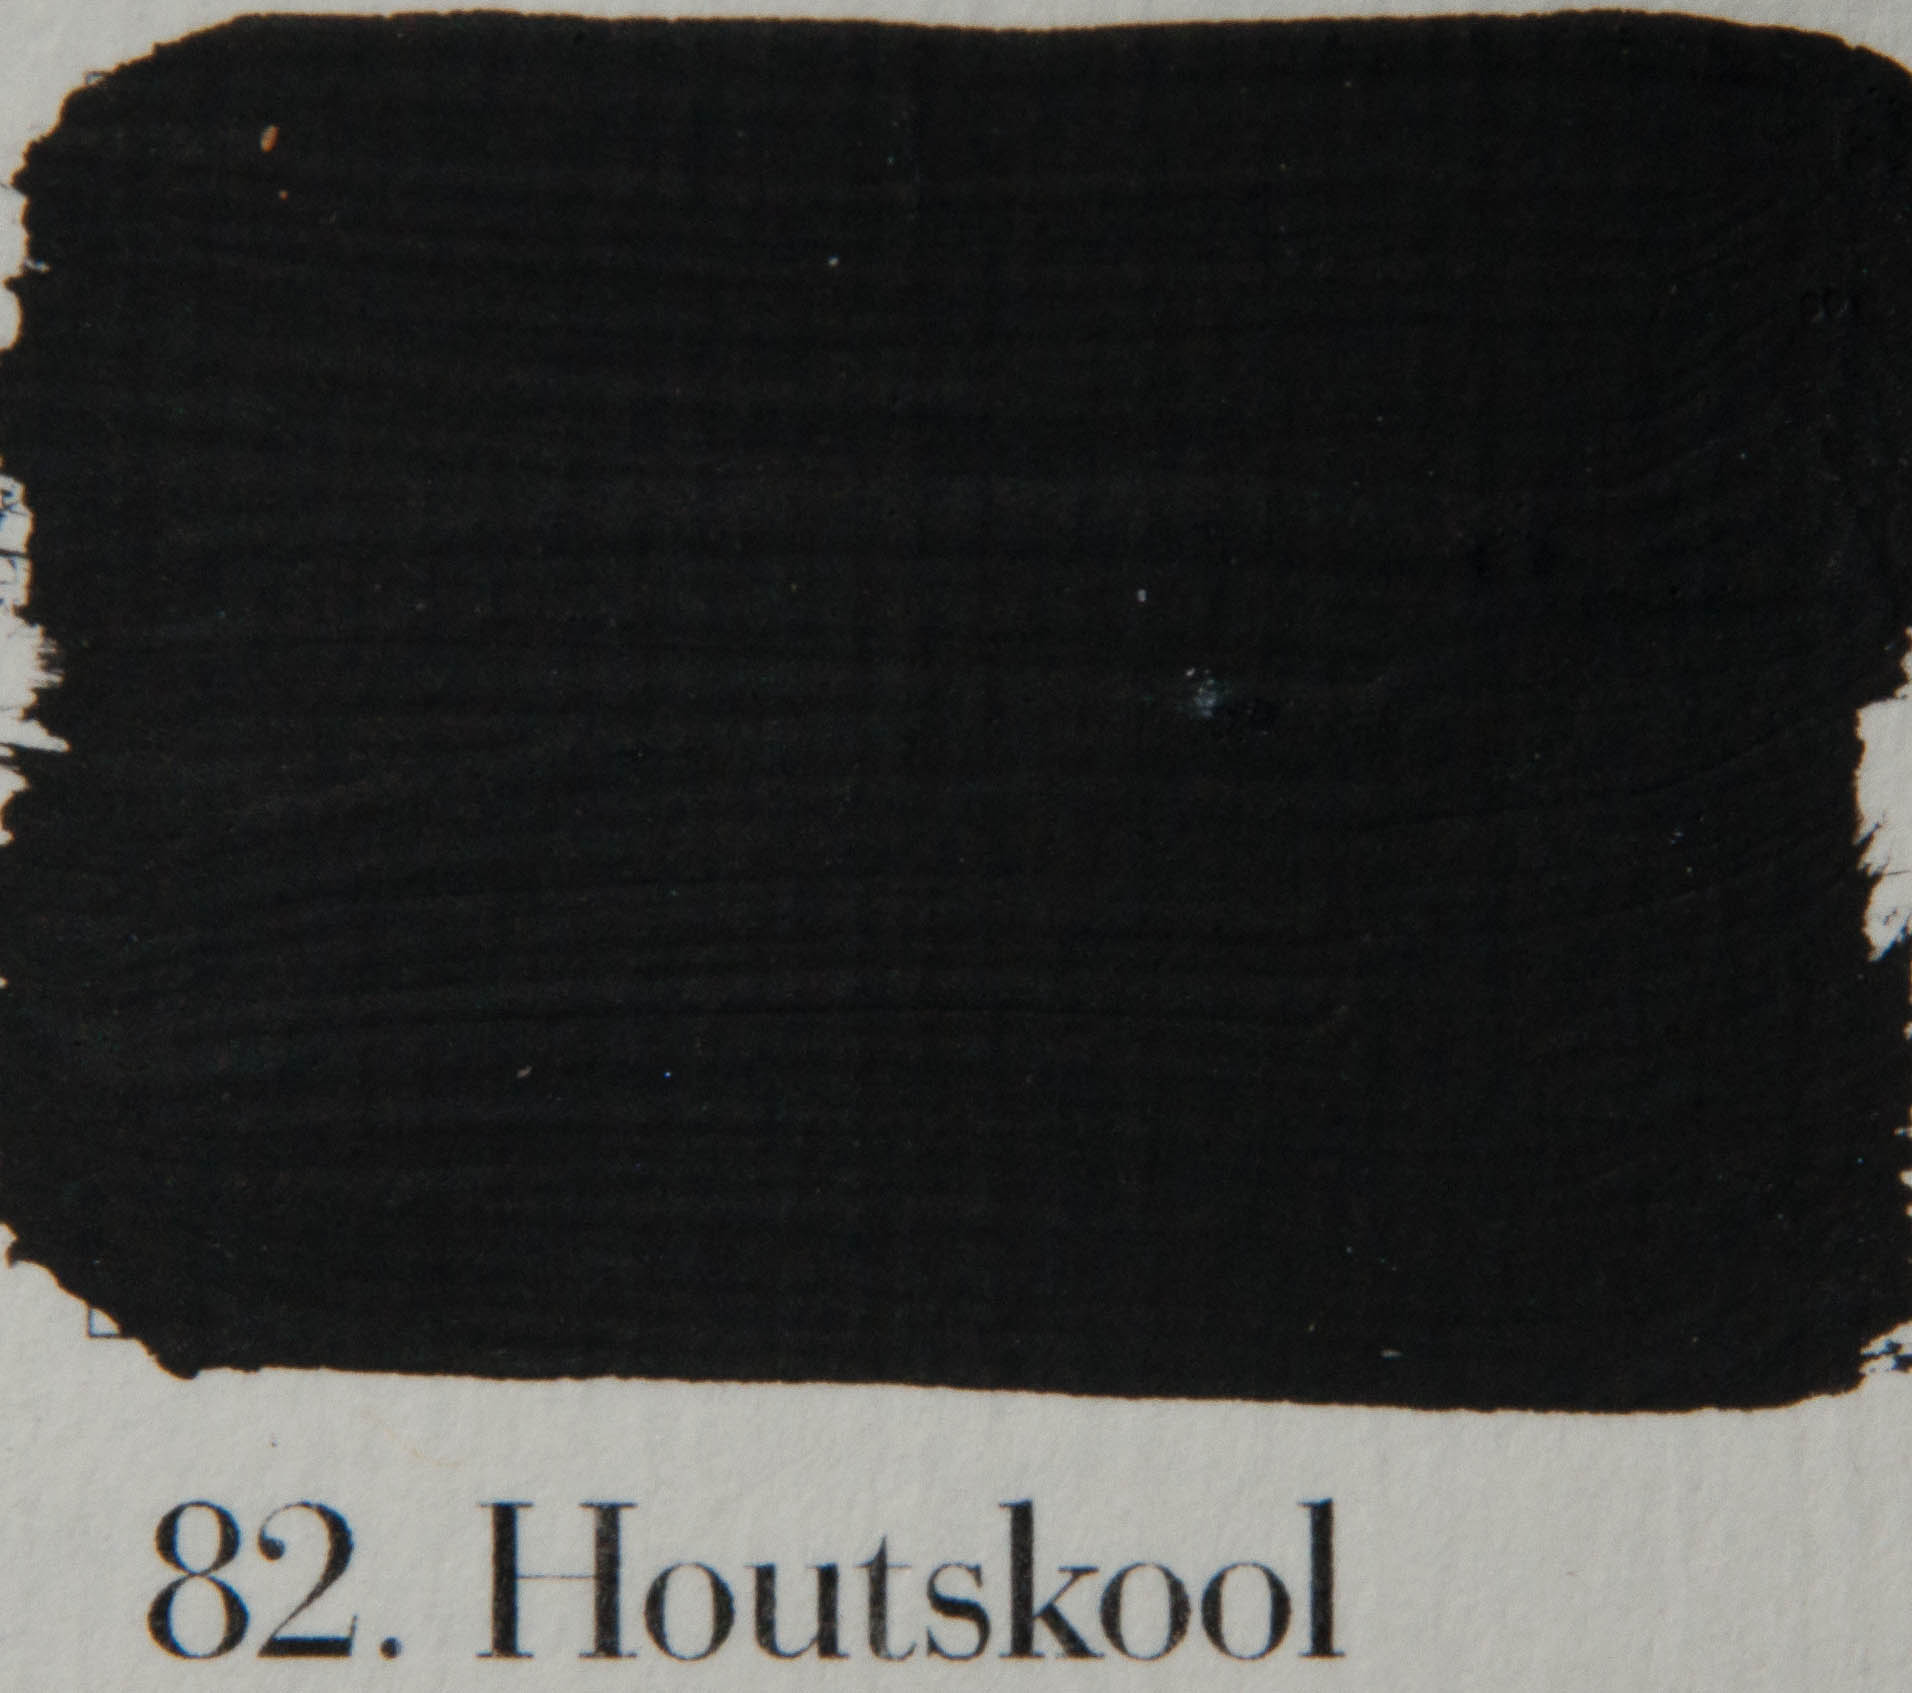 L 'Authentique kalkverf 82. Houtskool